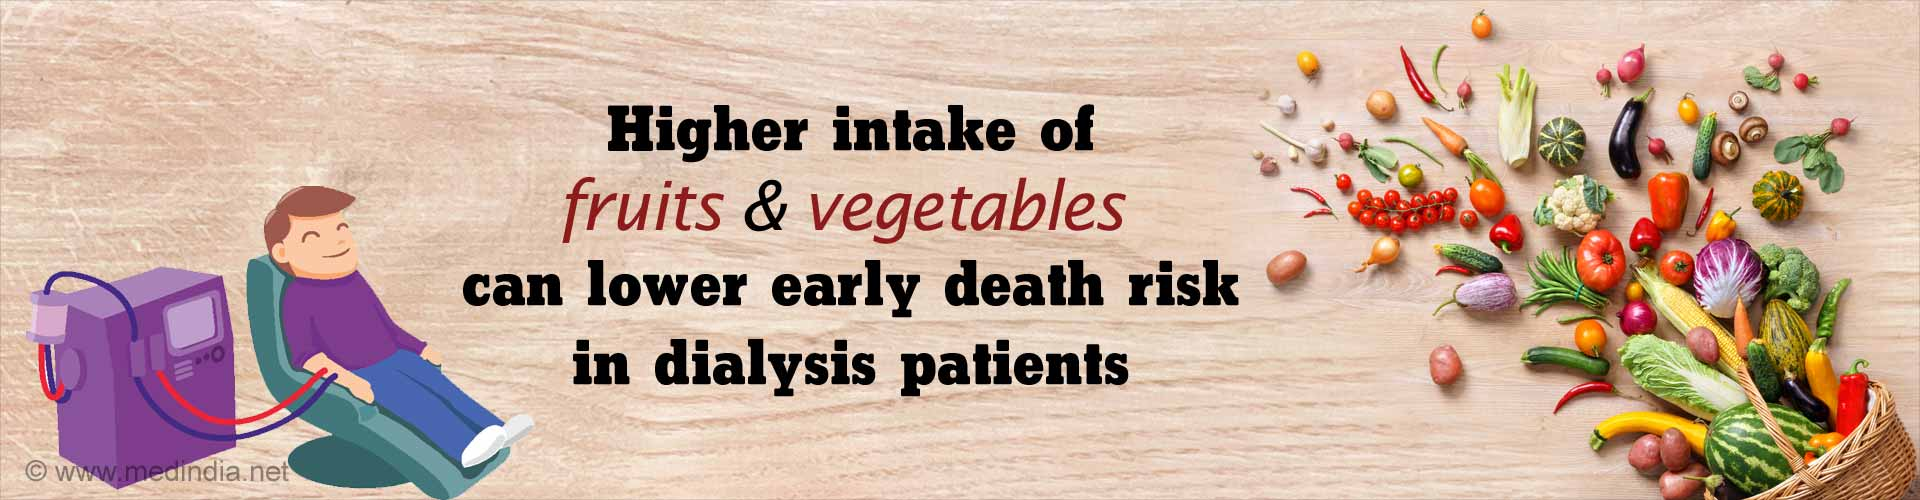 Increasing Fruit and Vegetable Consumption Lowers Early Death Risk in Dialysis Patients